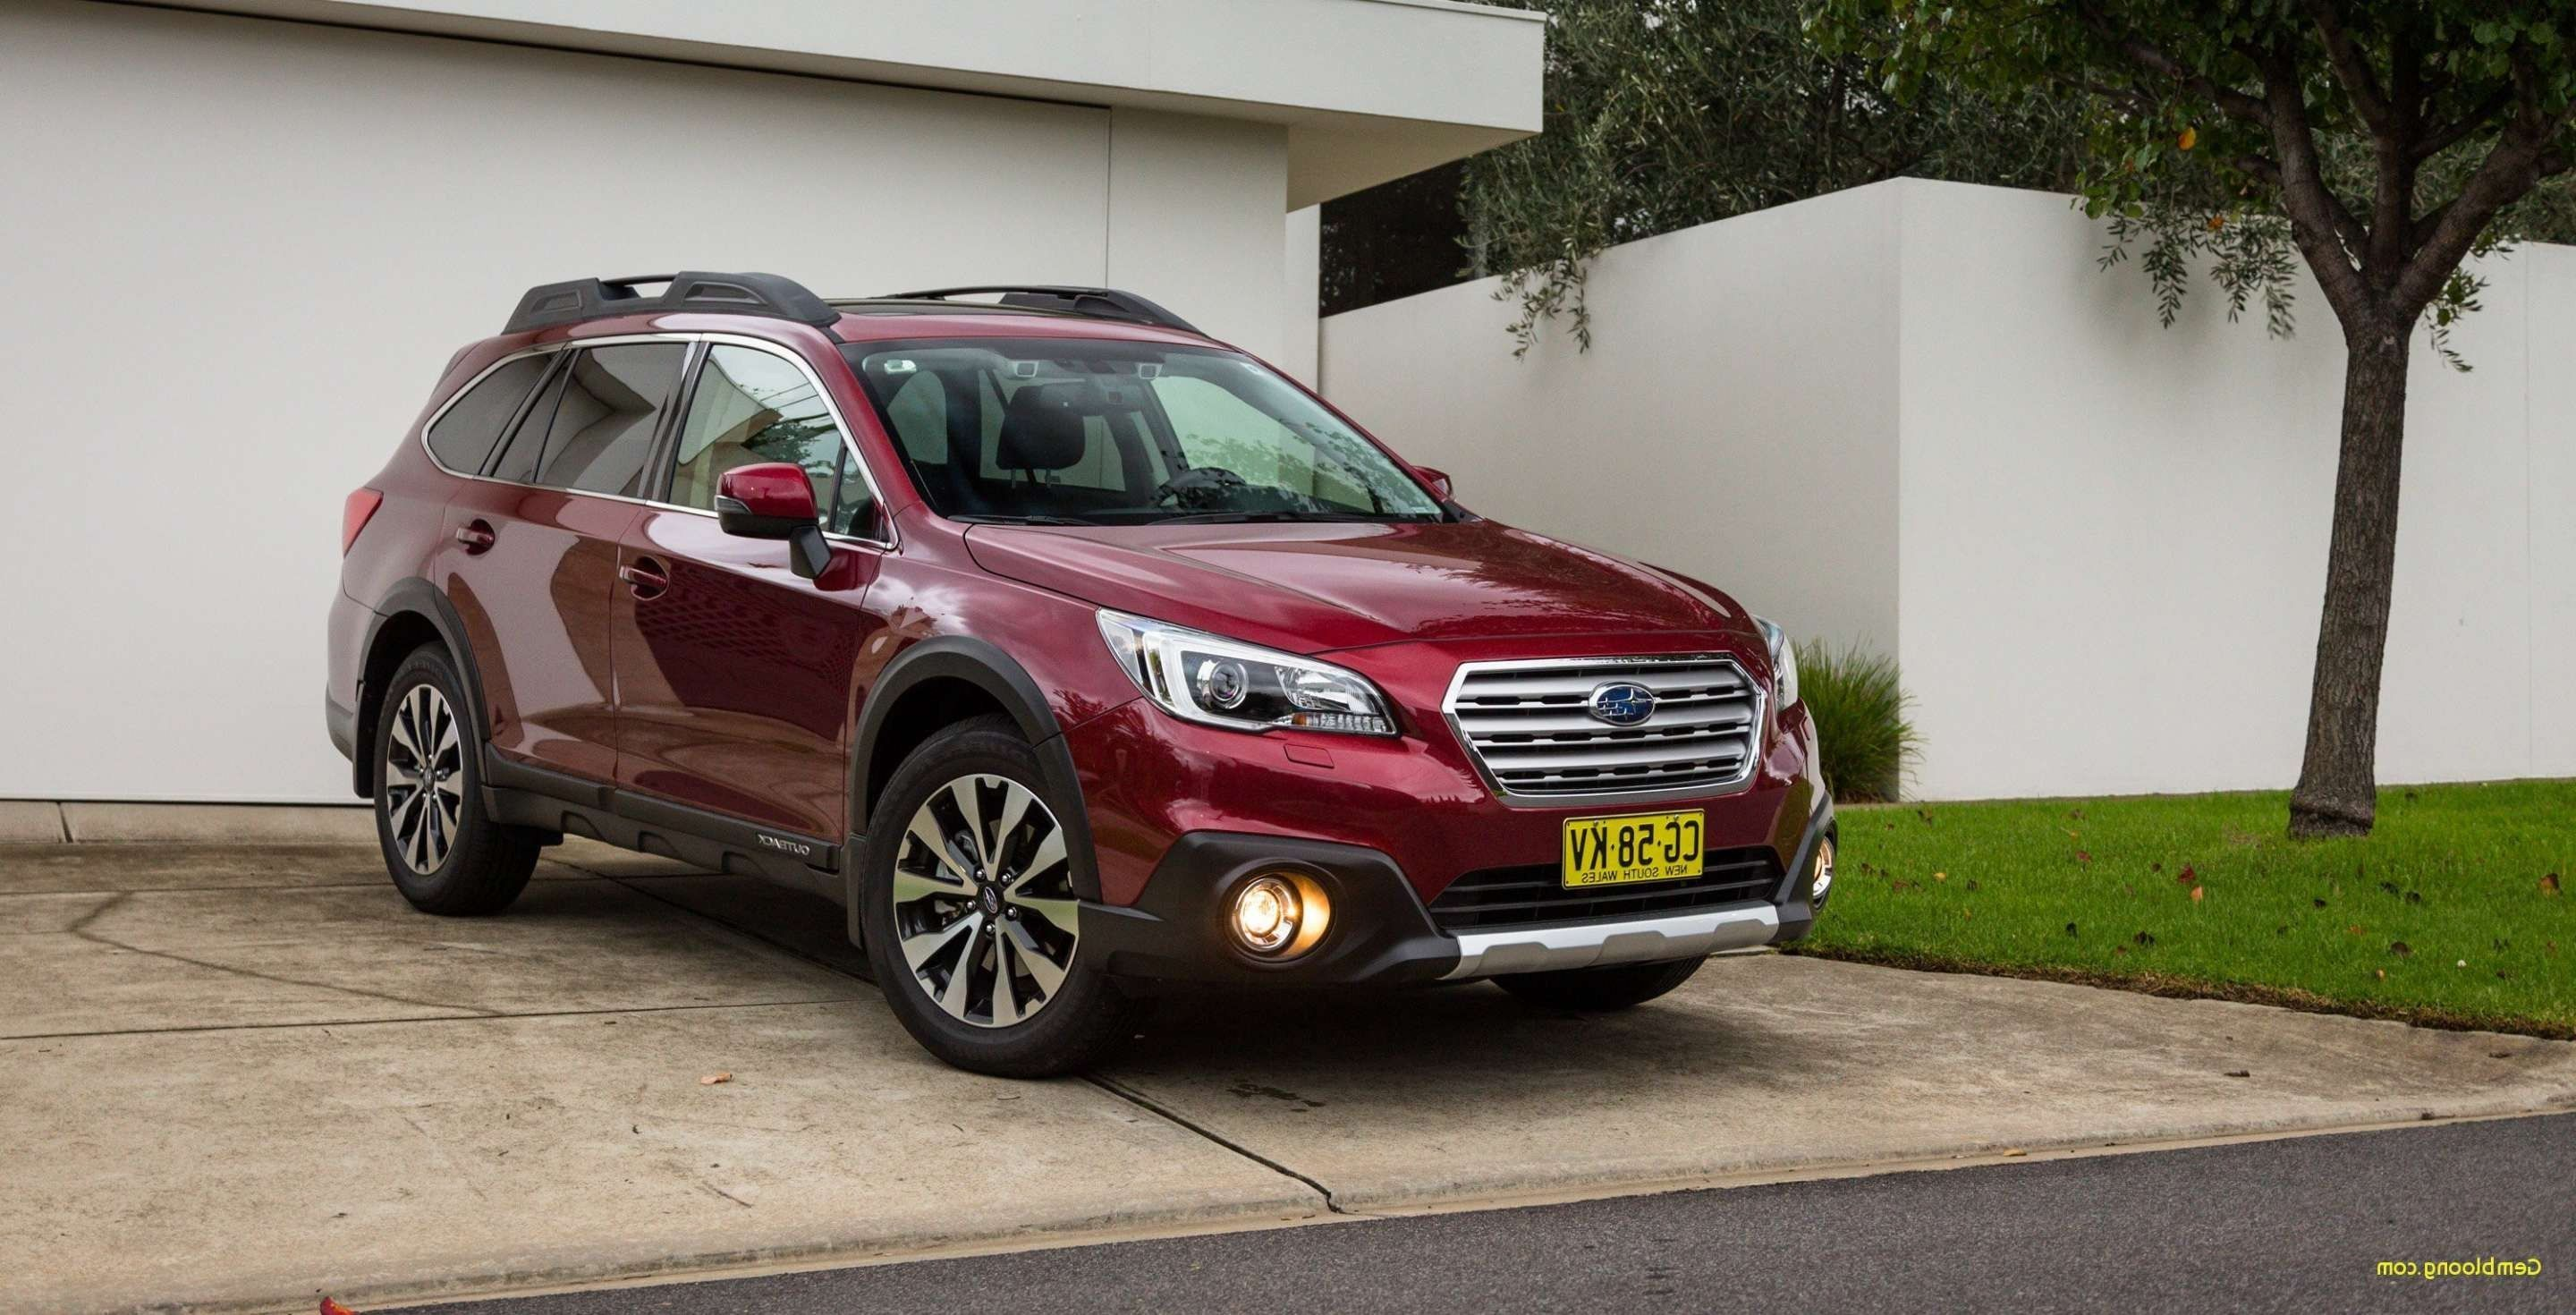 2020 Subaru Tribeca New Review Subaru Tribeca Subaru Subaru Wrx